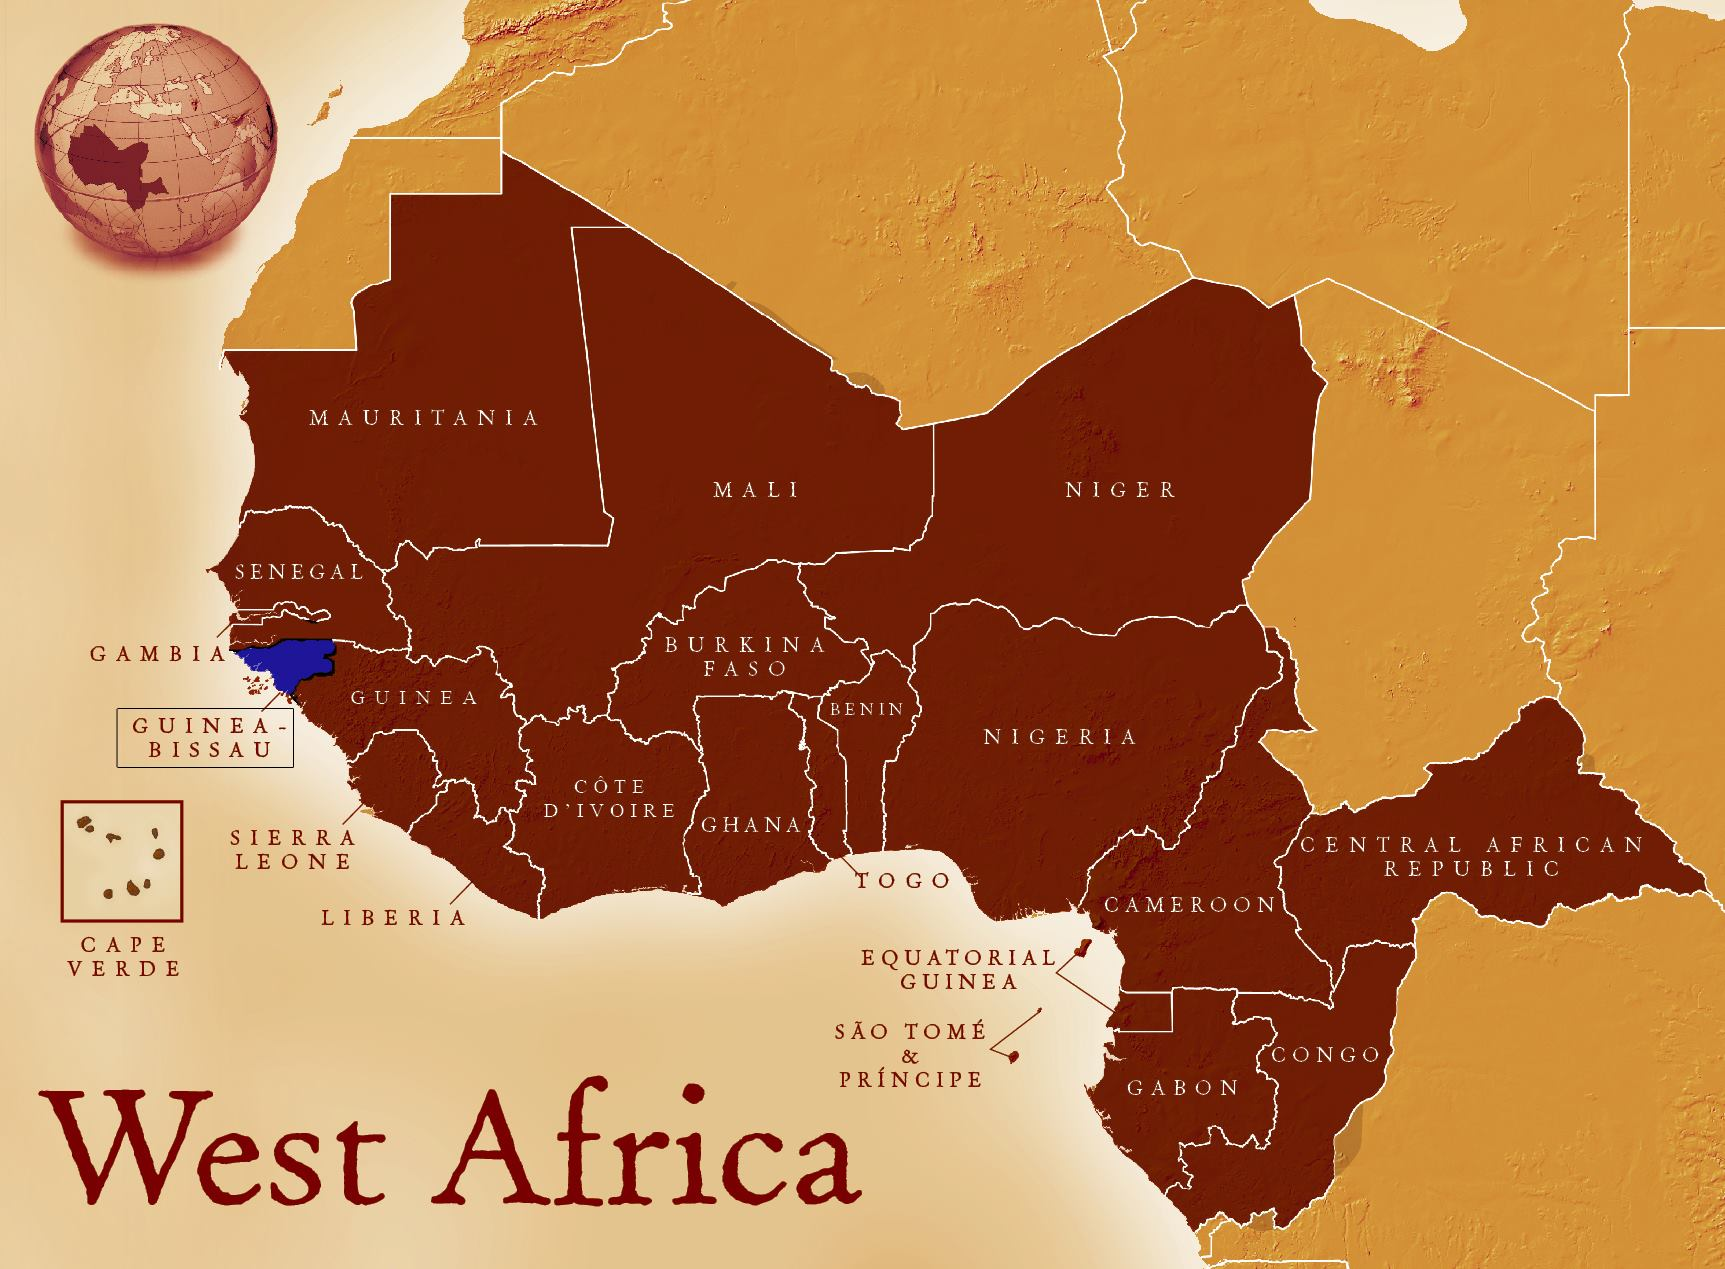 Map of West Africa showing Guinea-Bissau